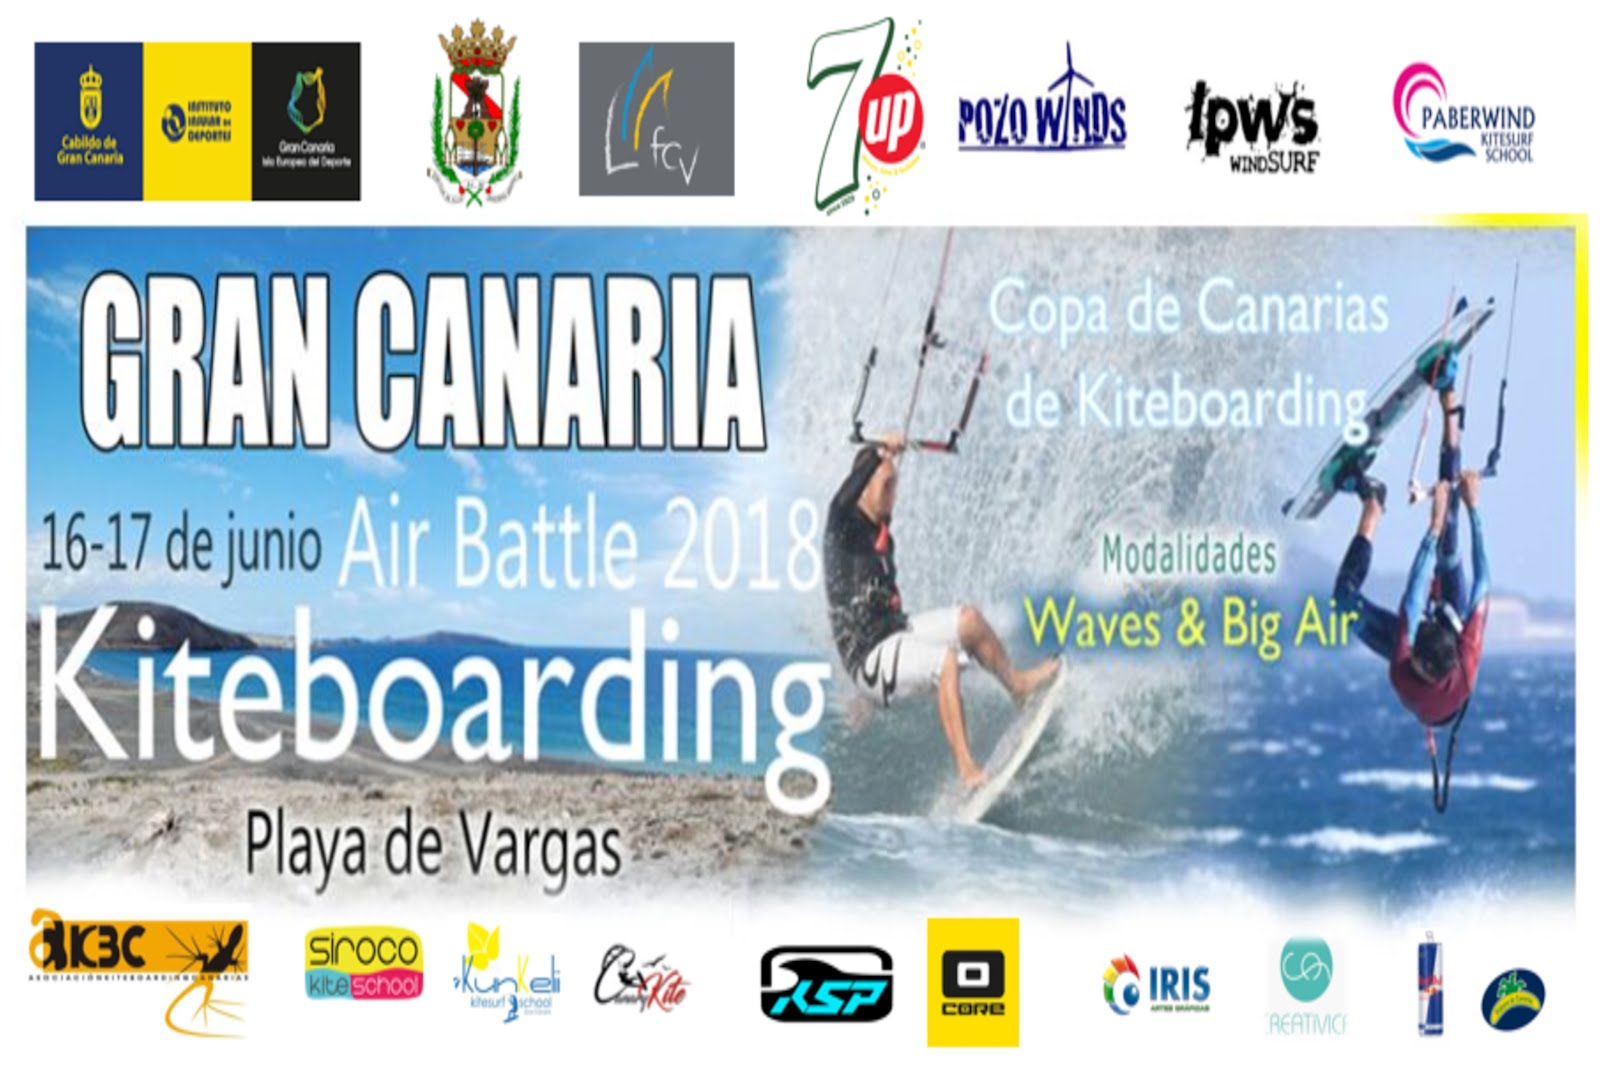 Copa de Canarias de Kiteboarding Air Battle 2018 Playa de Vargas